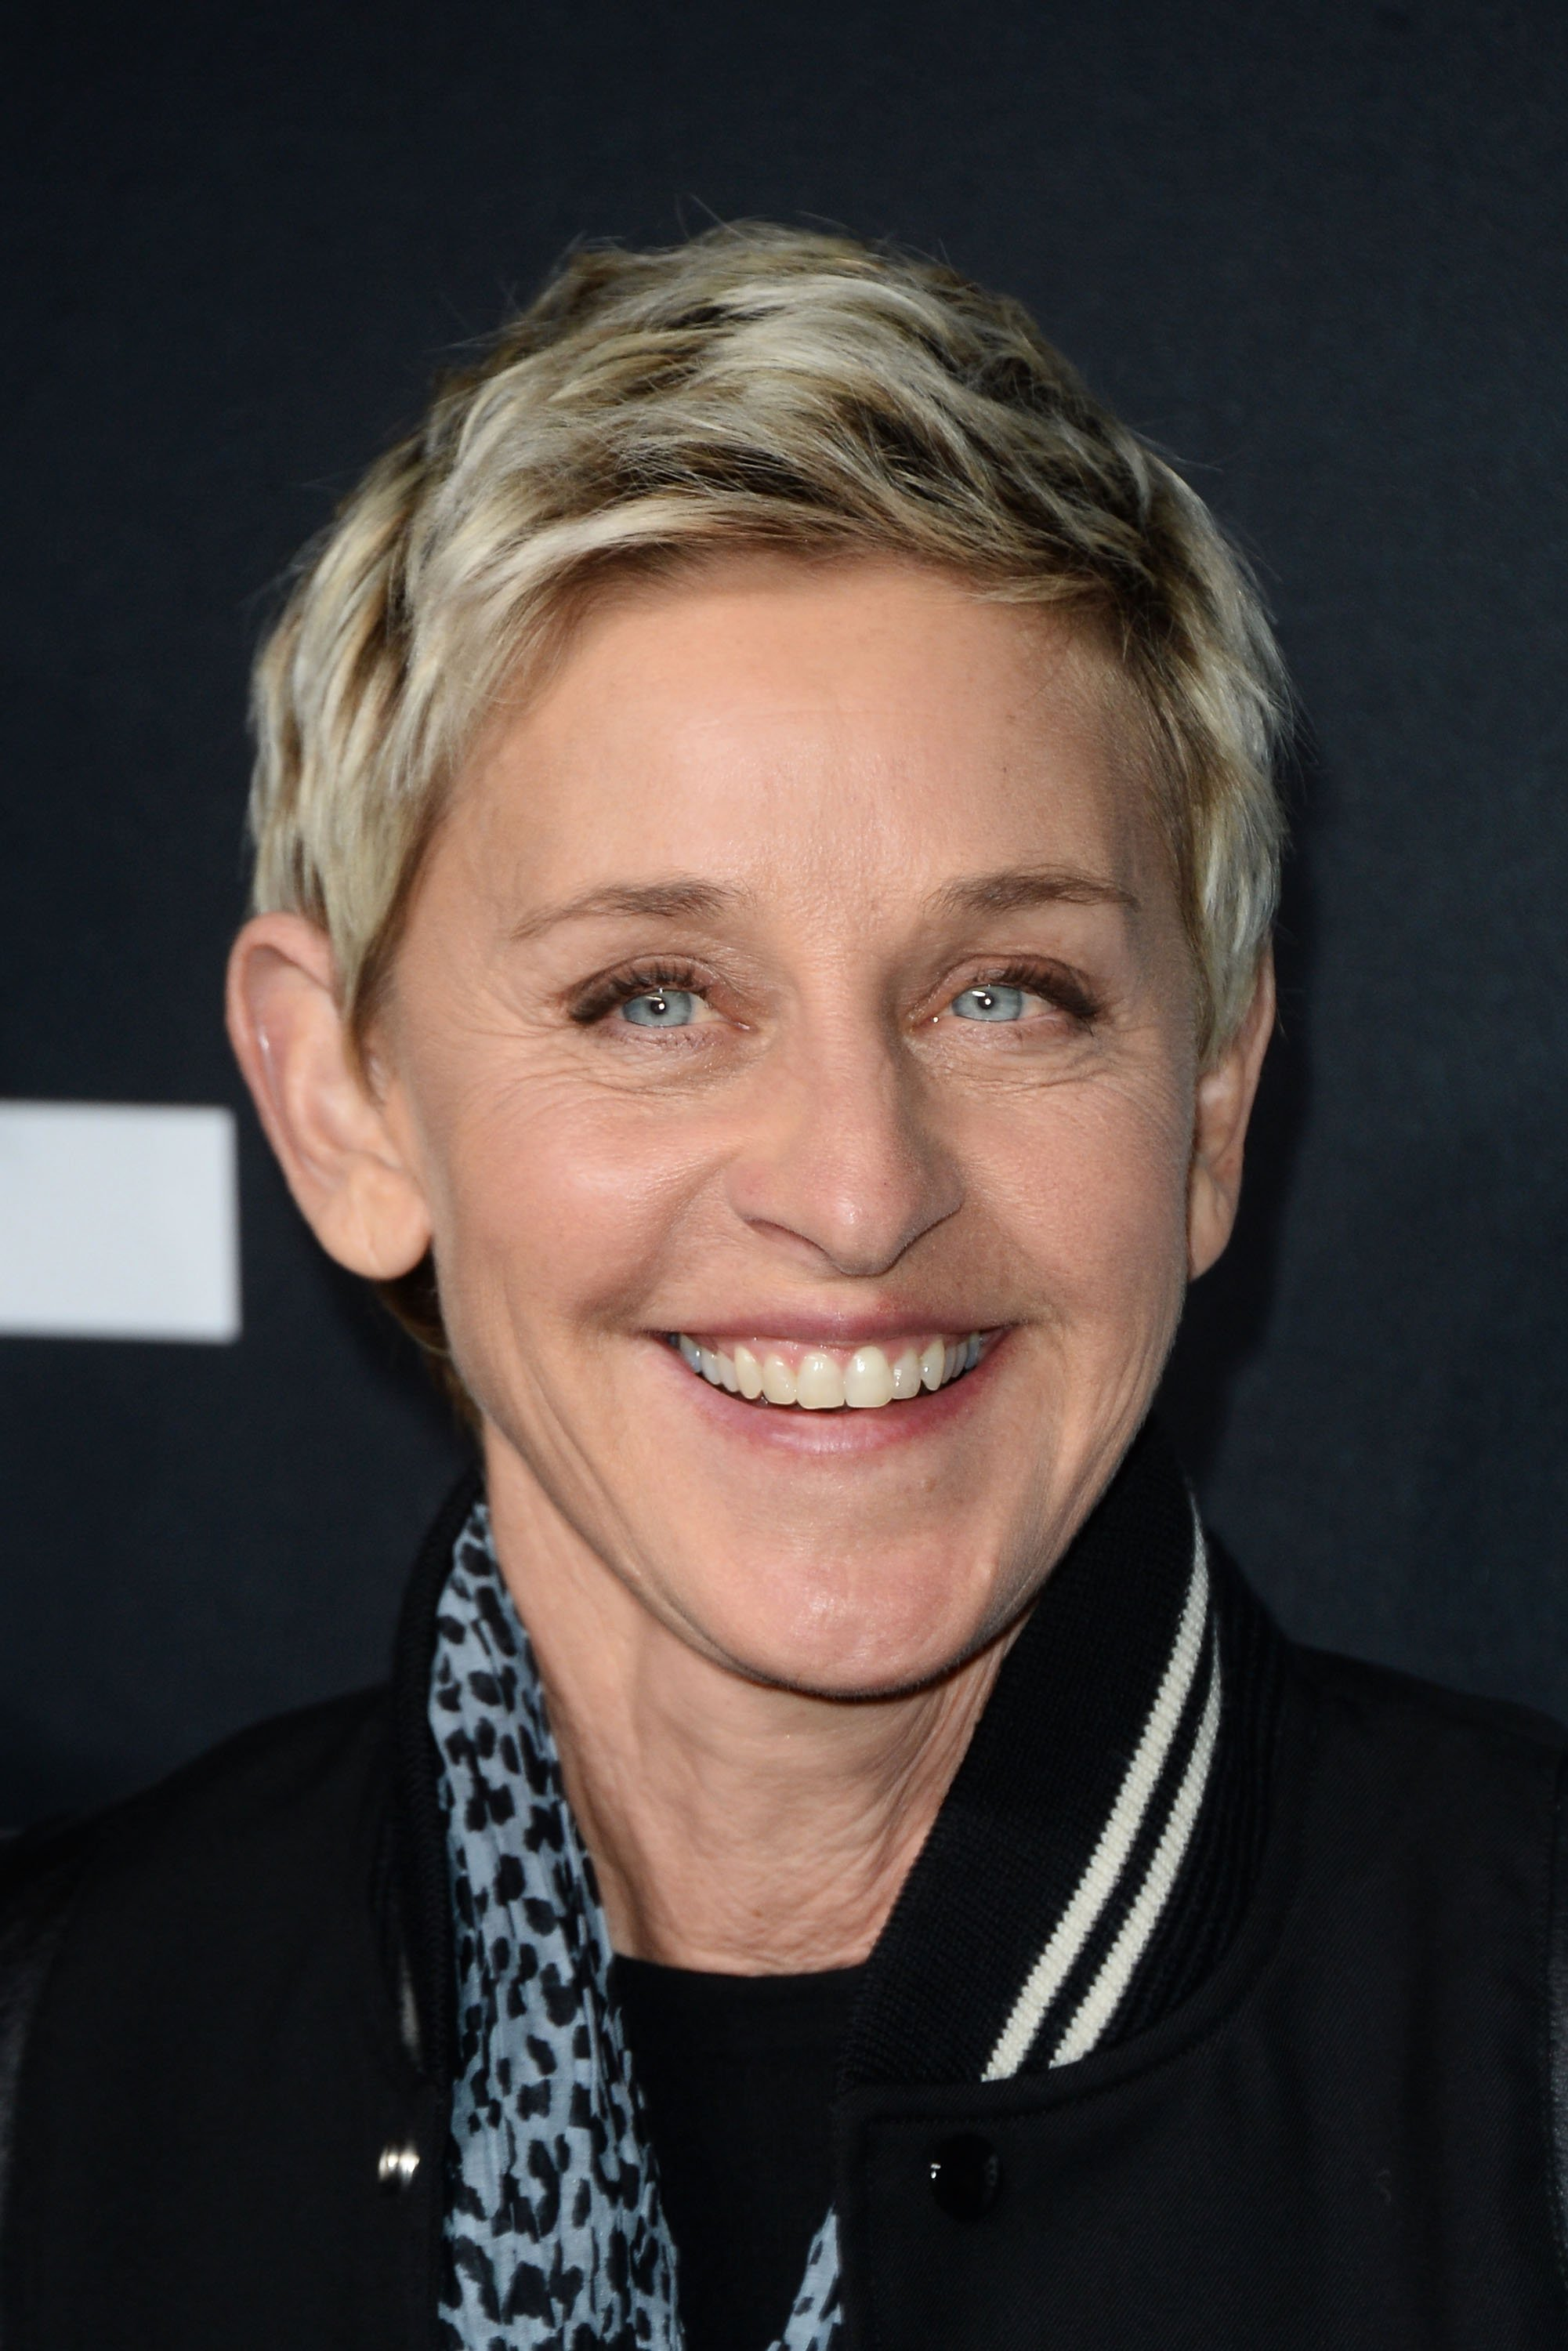 Ellen DeGeneres attends the Saint Laurent Show in Los Angeles, California on February 10, 2016 | Photo: Getty Images